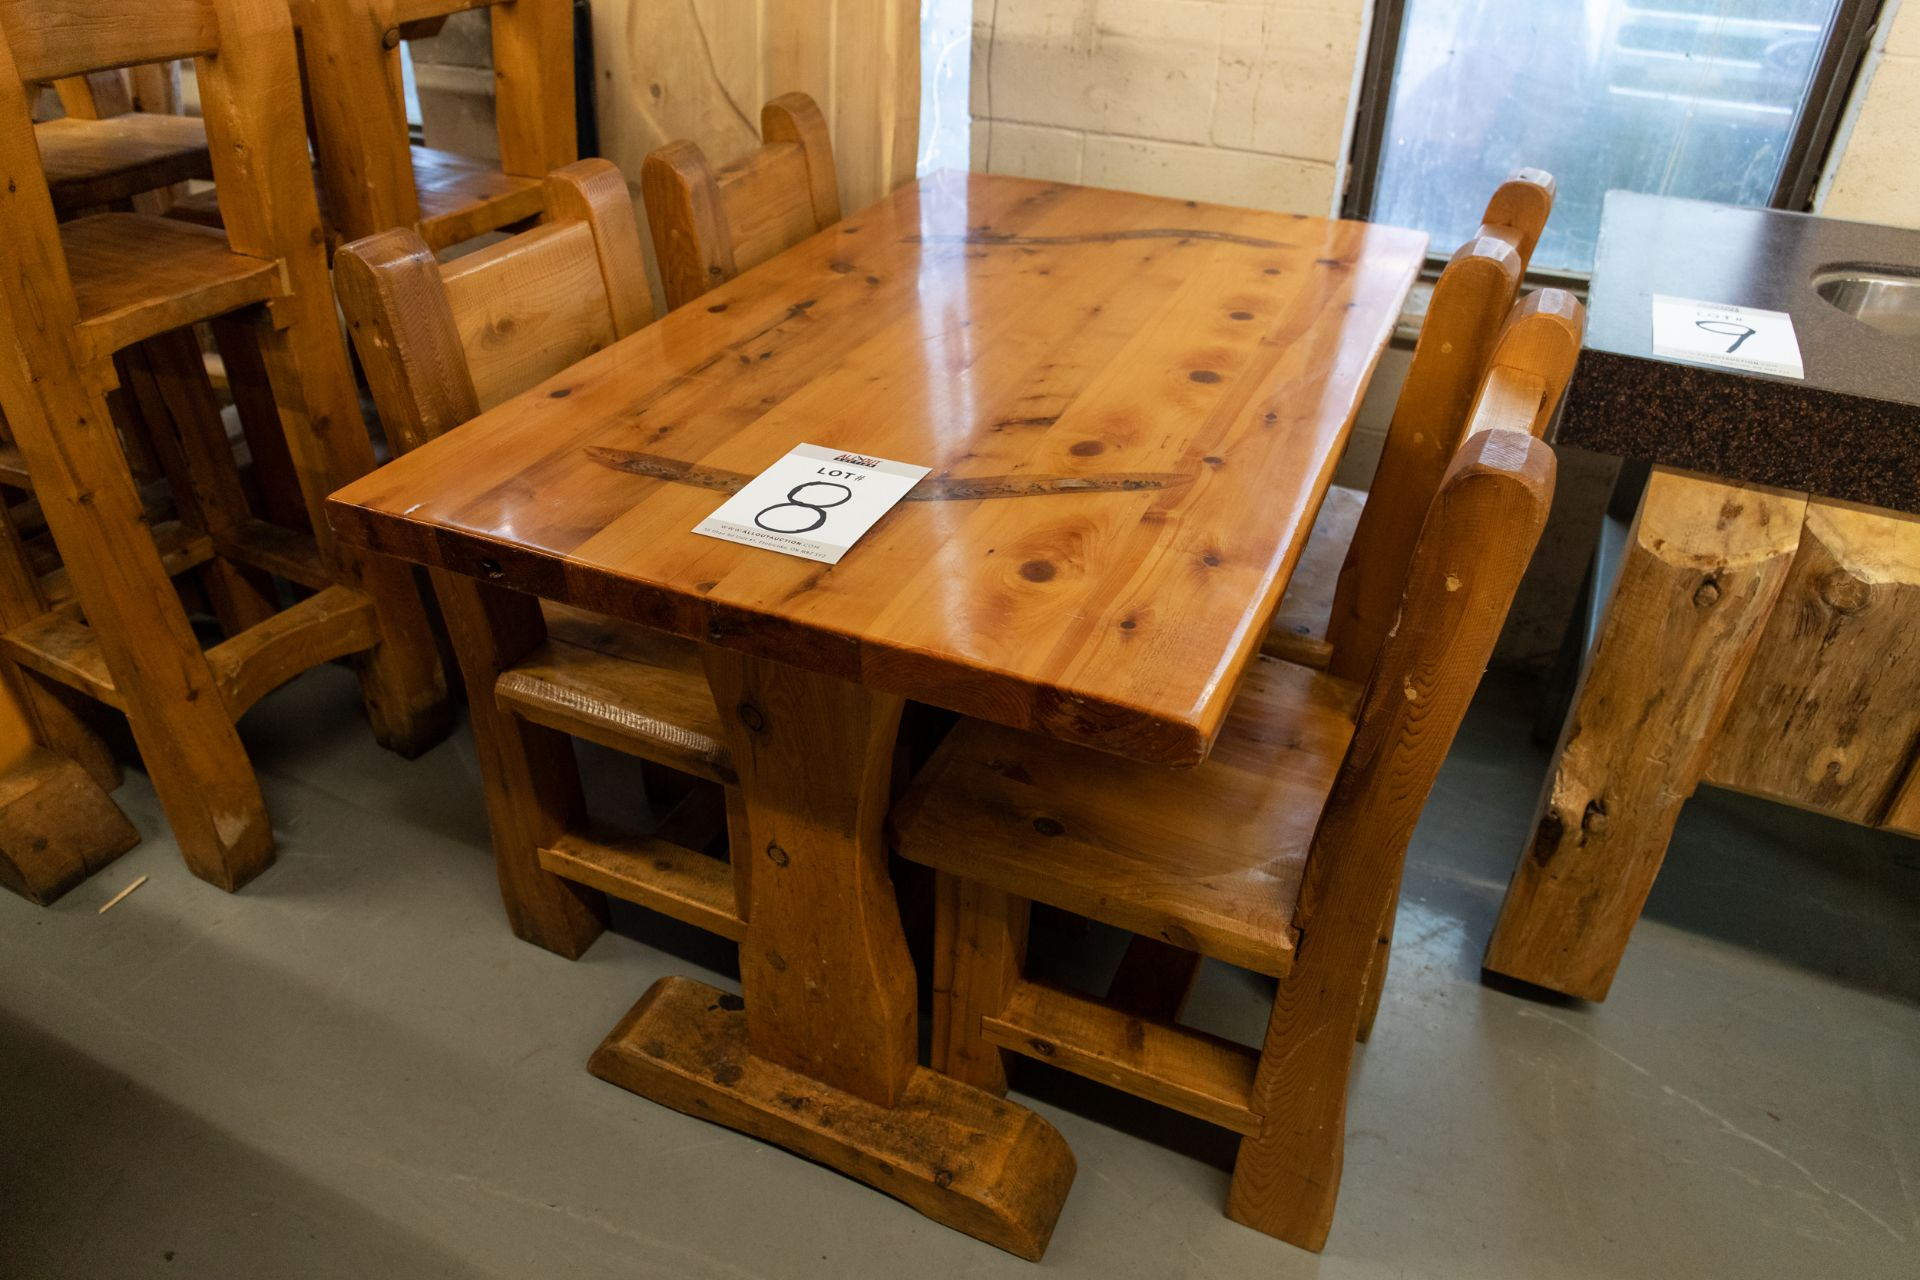 4' WHITE PINE DINING TABLE WITH 4 CHAIRS - L-48'' W-28'' H- 30''